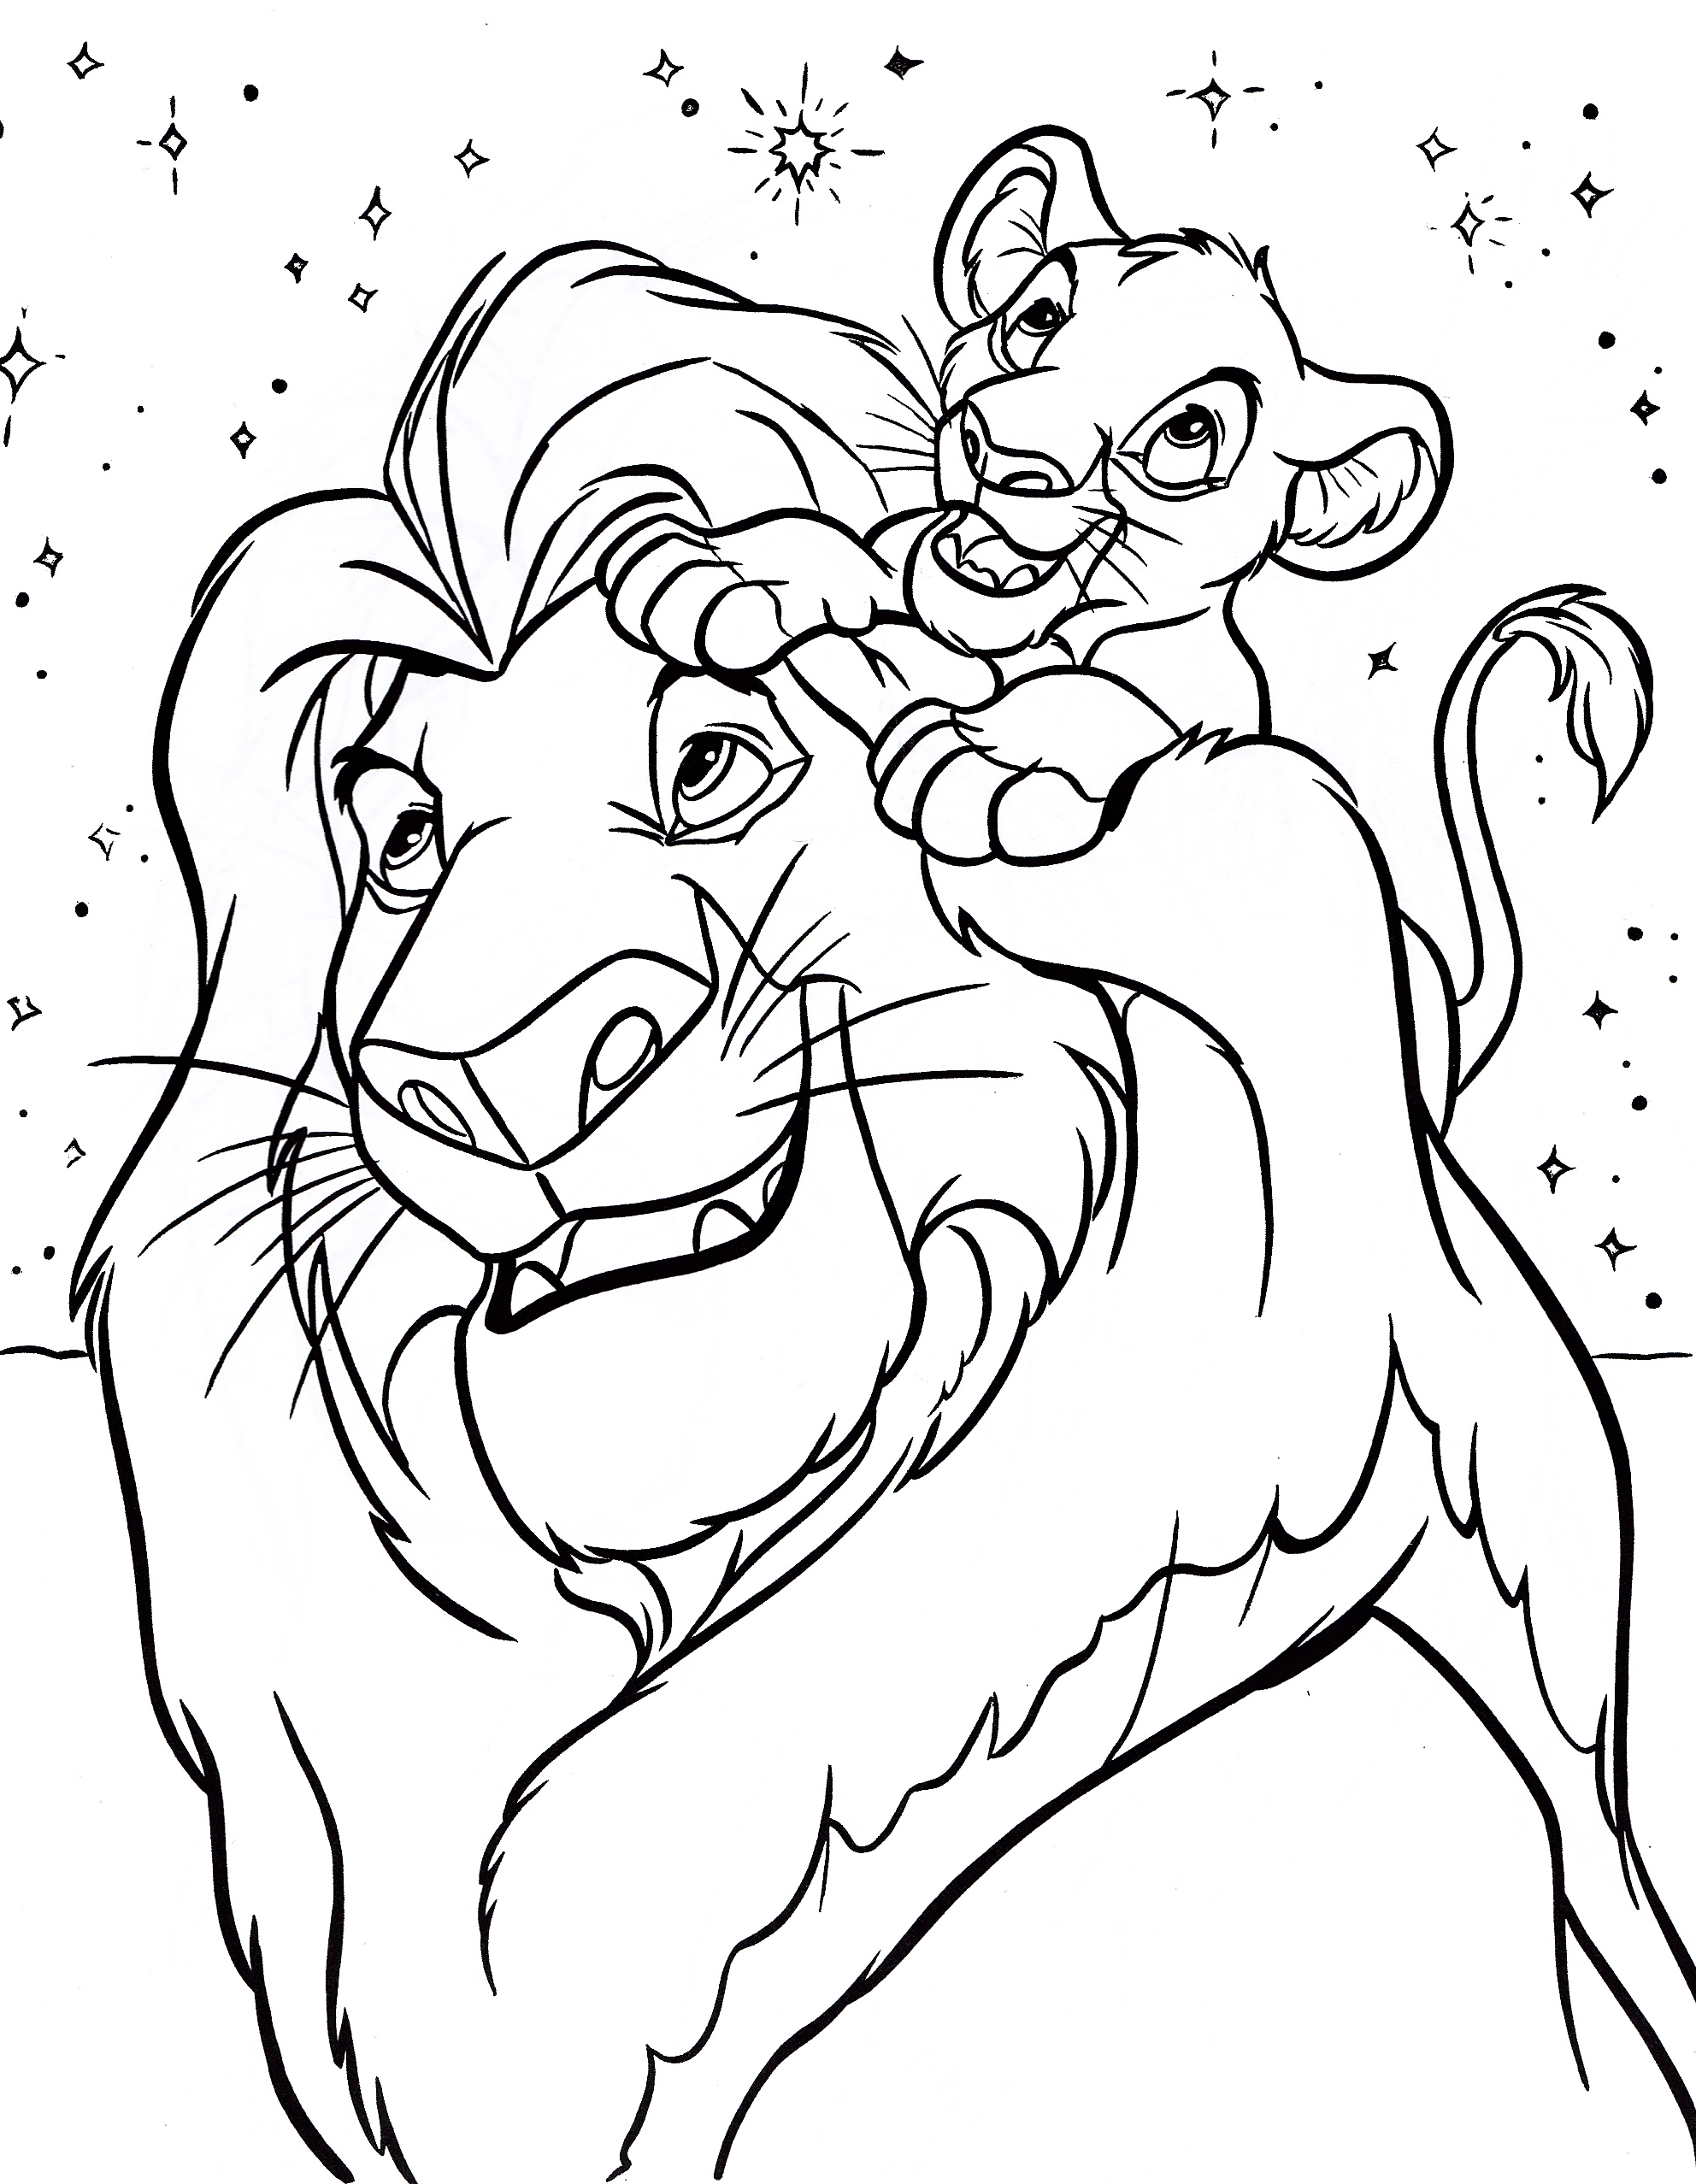 Disney Coloring Pages 10 Coloring Kids Disney Coloring Pages